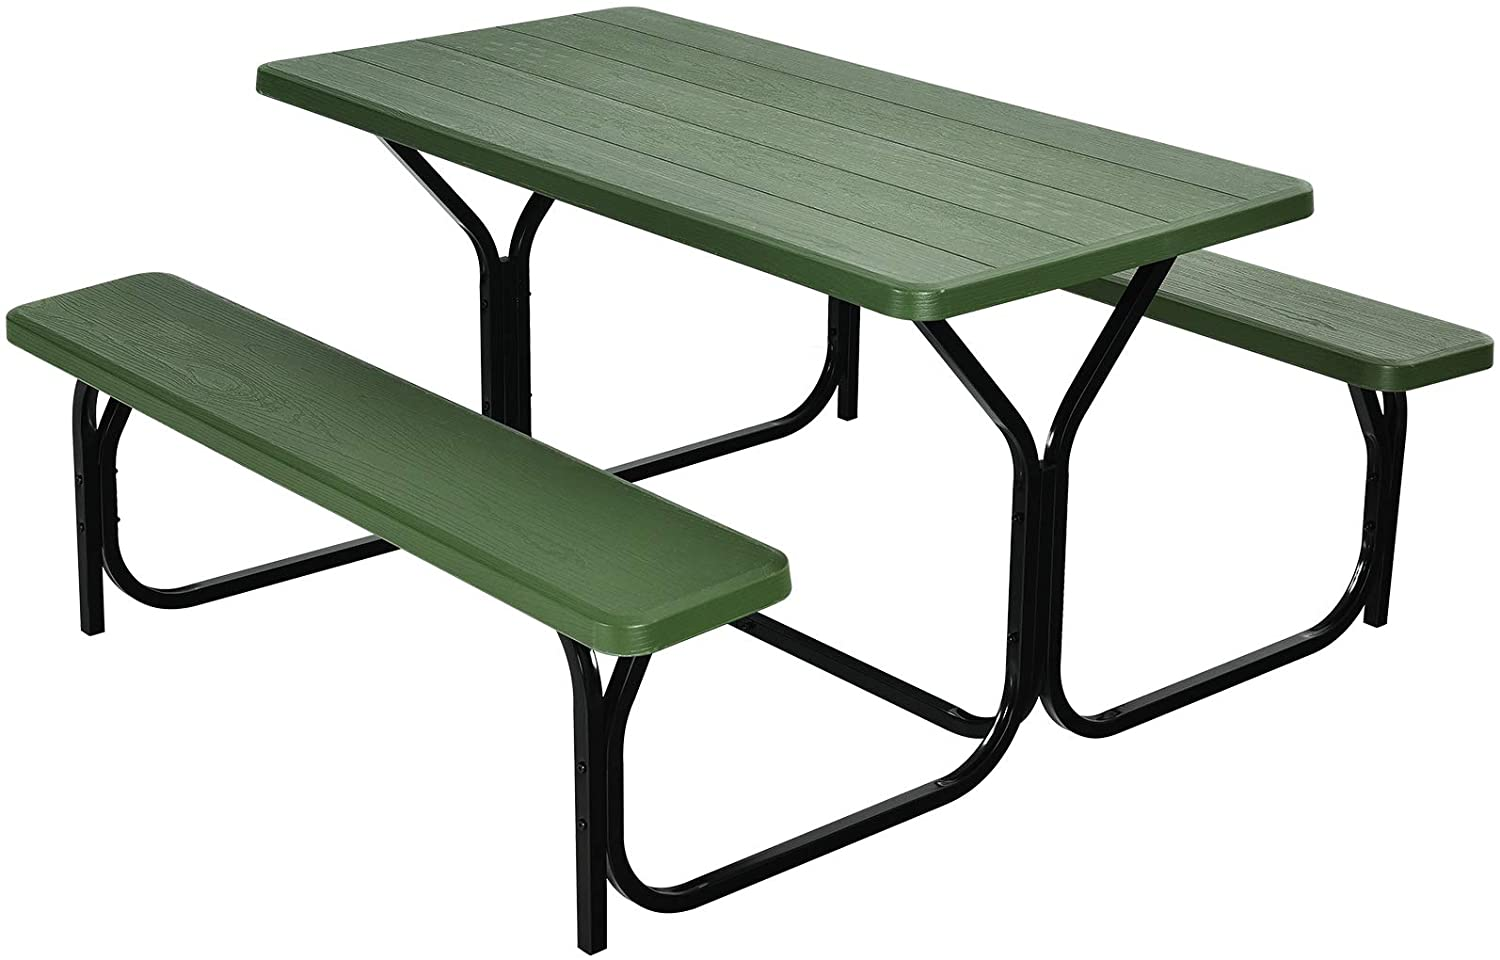 Giantex Picnic Table Bench Set Outdoor Camping All Weather Metal Base Wood-Like Texture Backyard Poolside Dining Party Garden Patio Lawn Deck Furniture Large Camping Picnic Tables for Adult (Green)